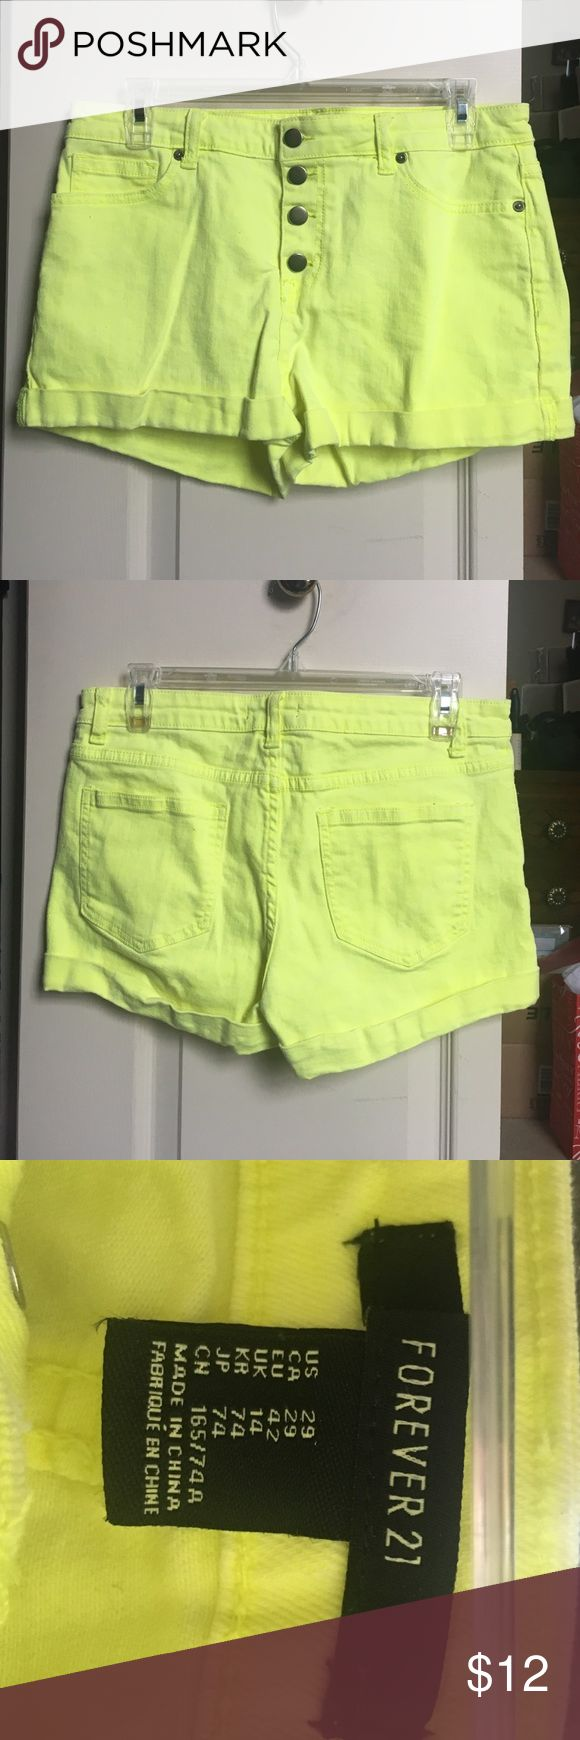 F21 - Neon yellow shorts Cute neon shorts. Size 29. From F21. Brand new never worn without tags. Forever 21 Shorts Jean Shorts